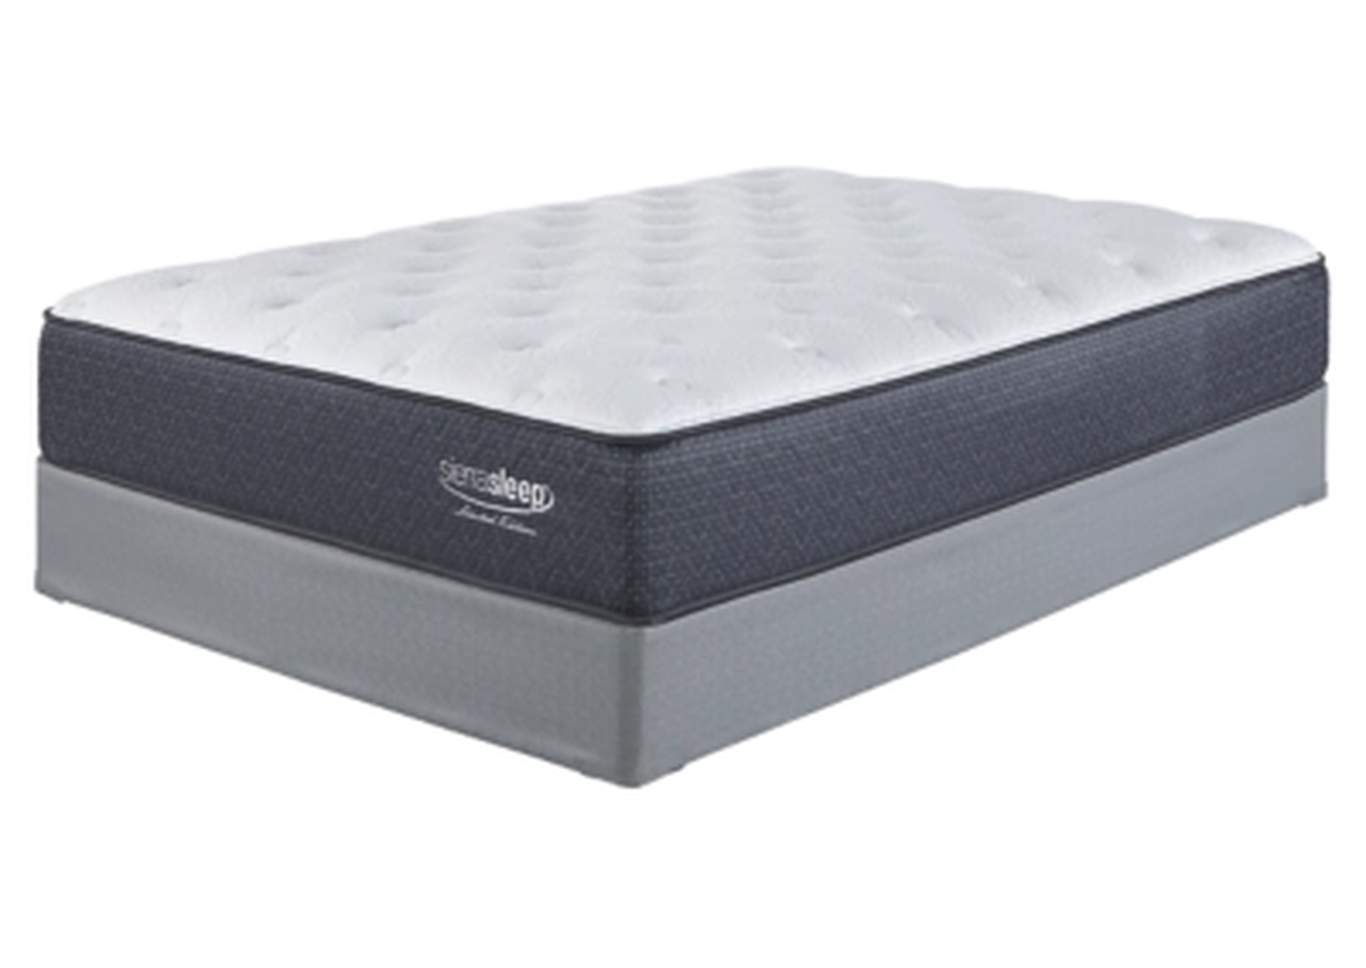 Regal house furniture outlet new bedford ma limited edition plush white queen mattress Queen mattress sale